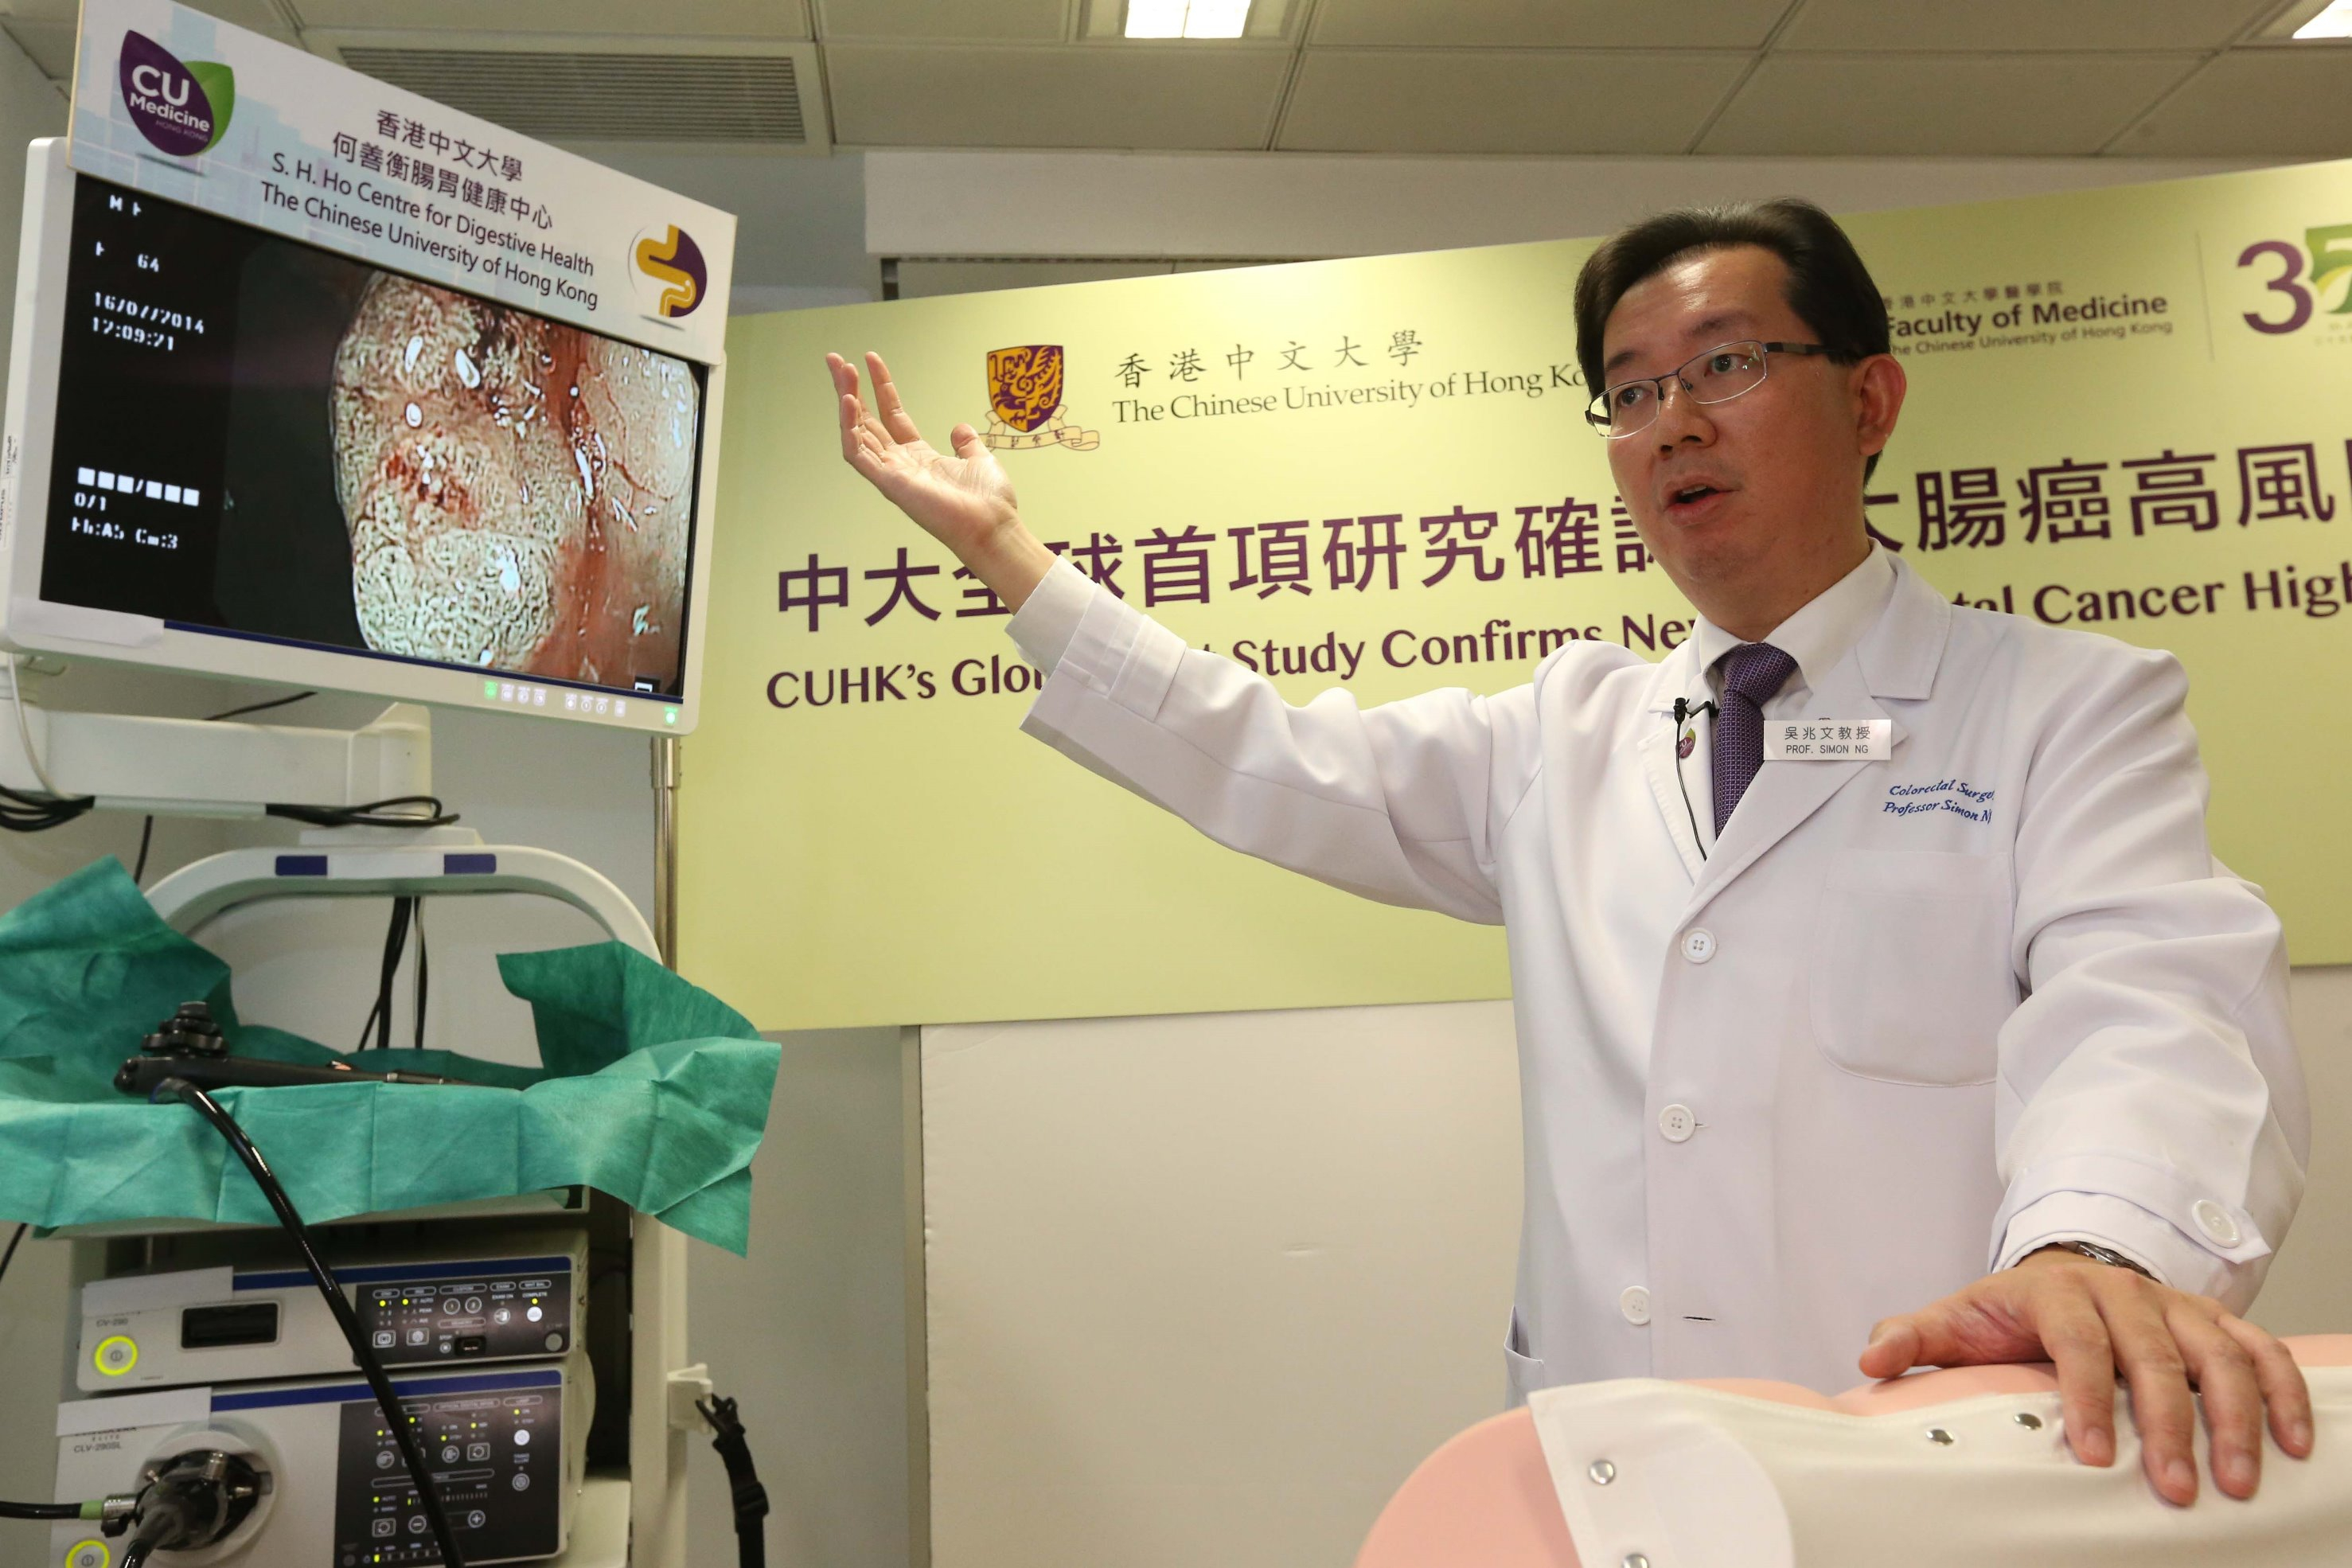 Prof. Simon NG states that if the polyps could be discovered in time and removed through colonoscopy, the incidence of colorectal cancer could be curbed effectively.